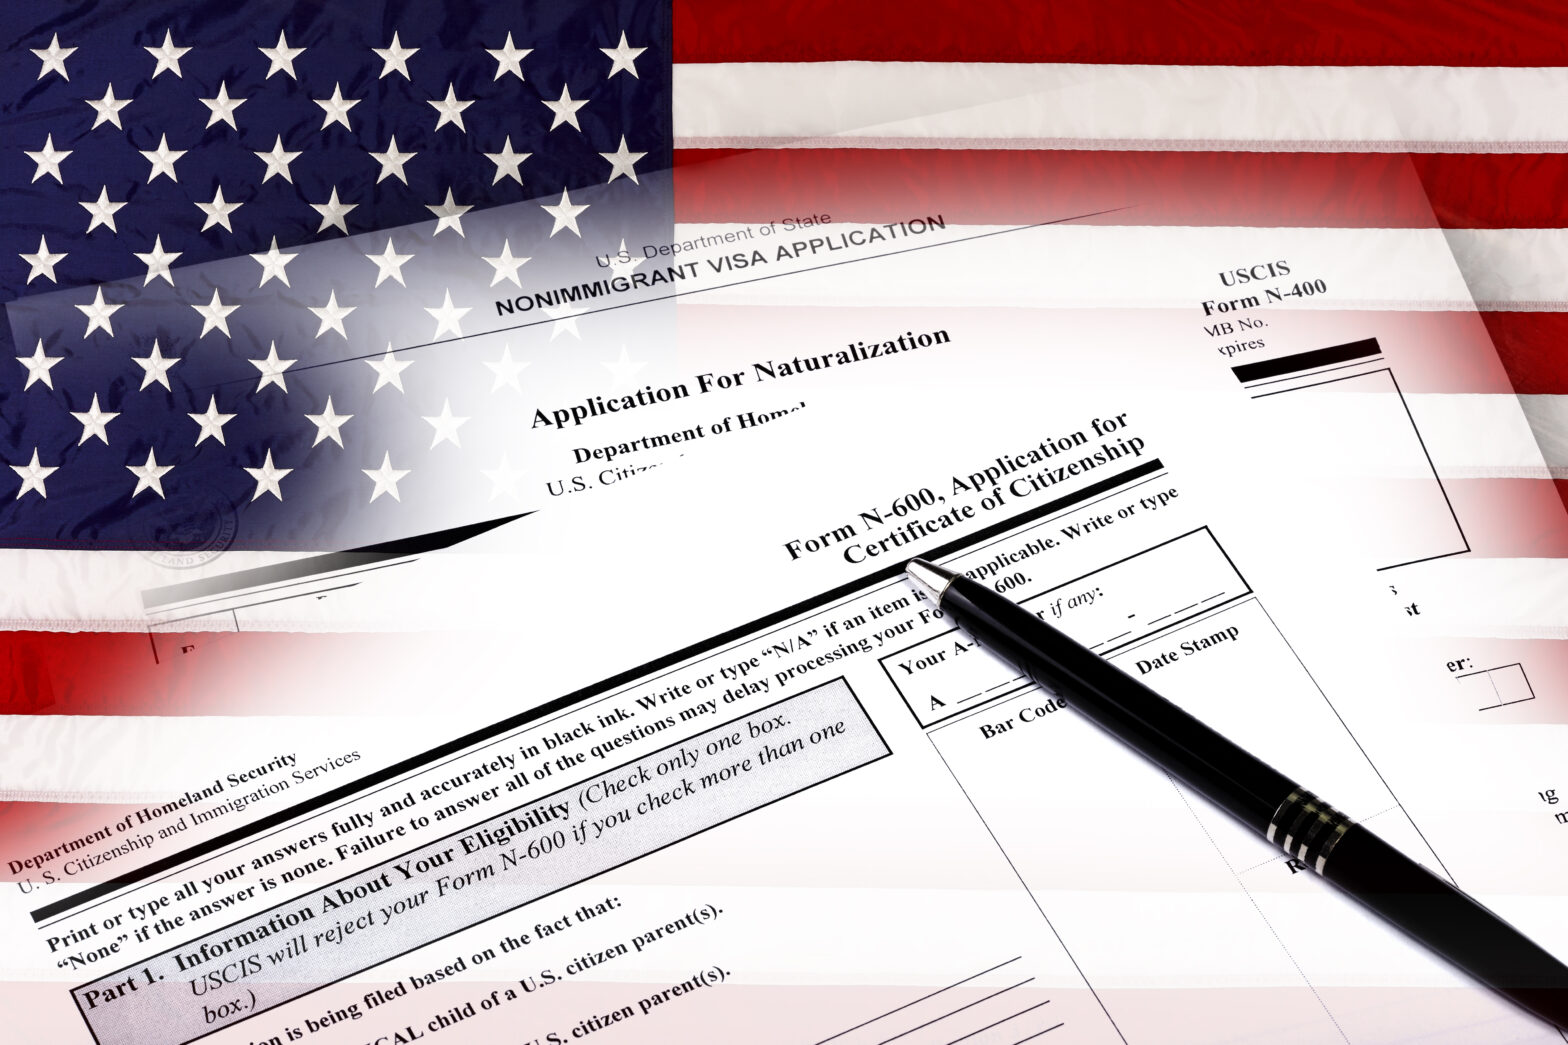 The U.S. Postal Service and U.S. Citizenship and Immigration Services: Similar but Unequal